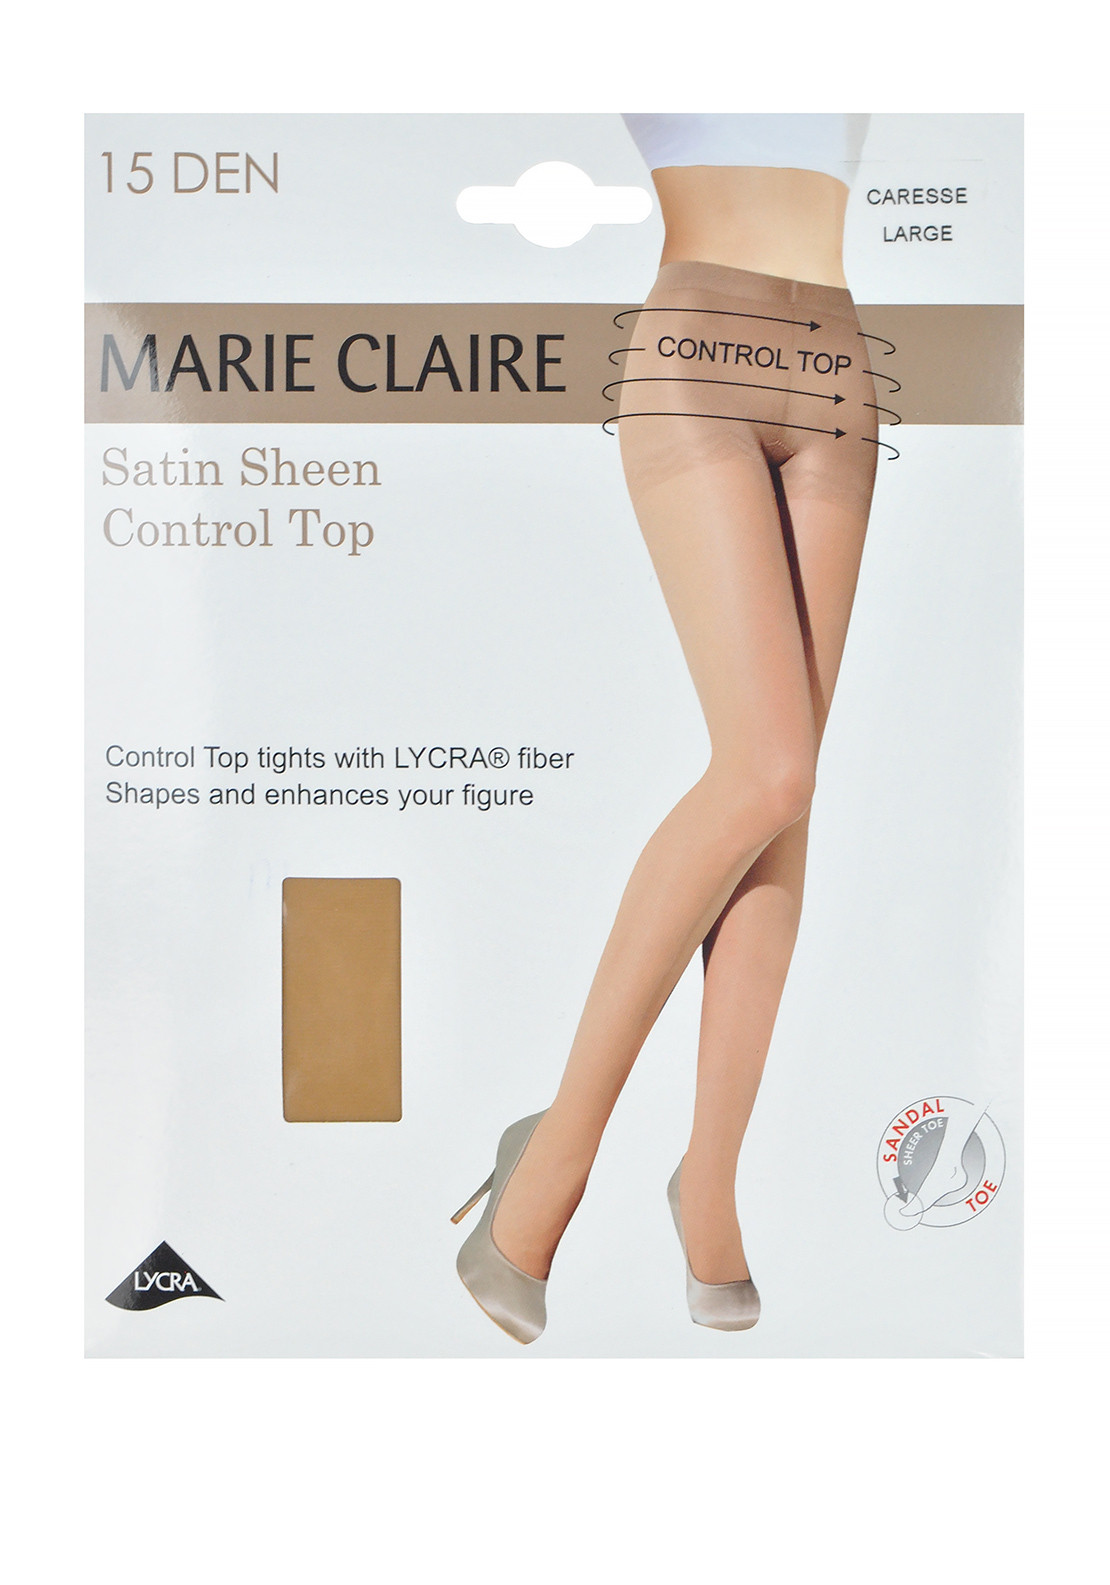 Marie Claire 15 Denier Control Top Satin Sheen Tights, Caresse